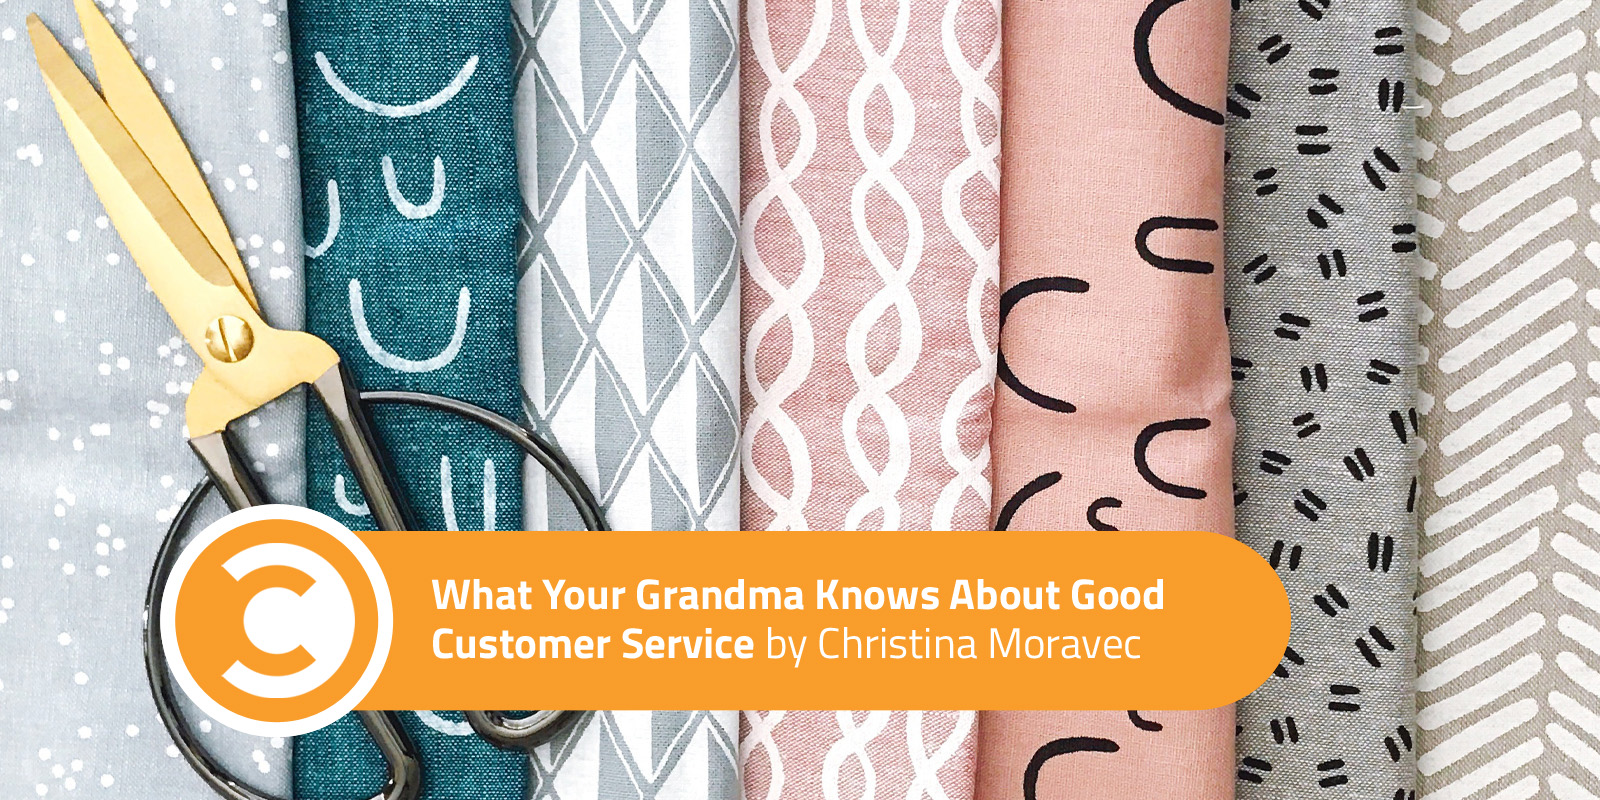 What Your Grandma Knows About Good Customer Service